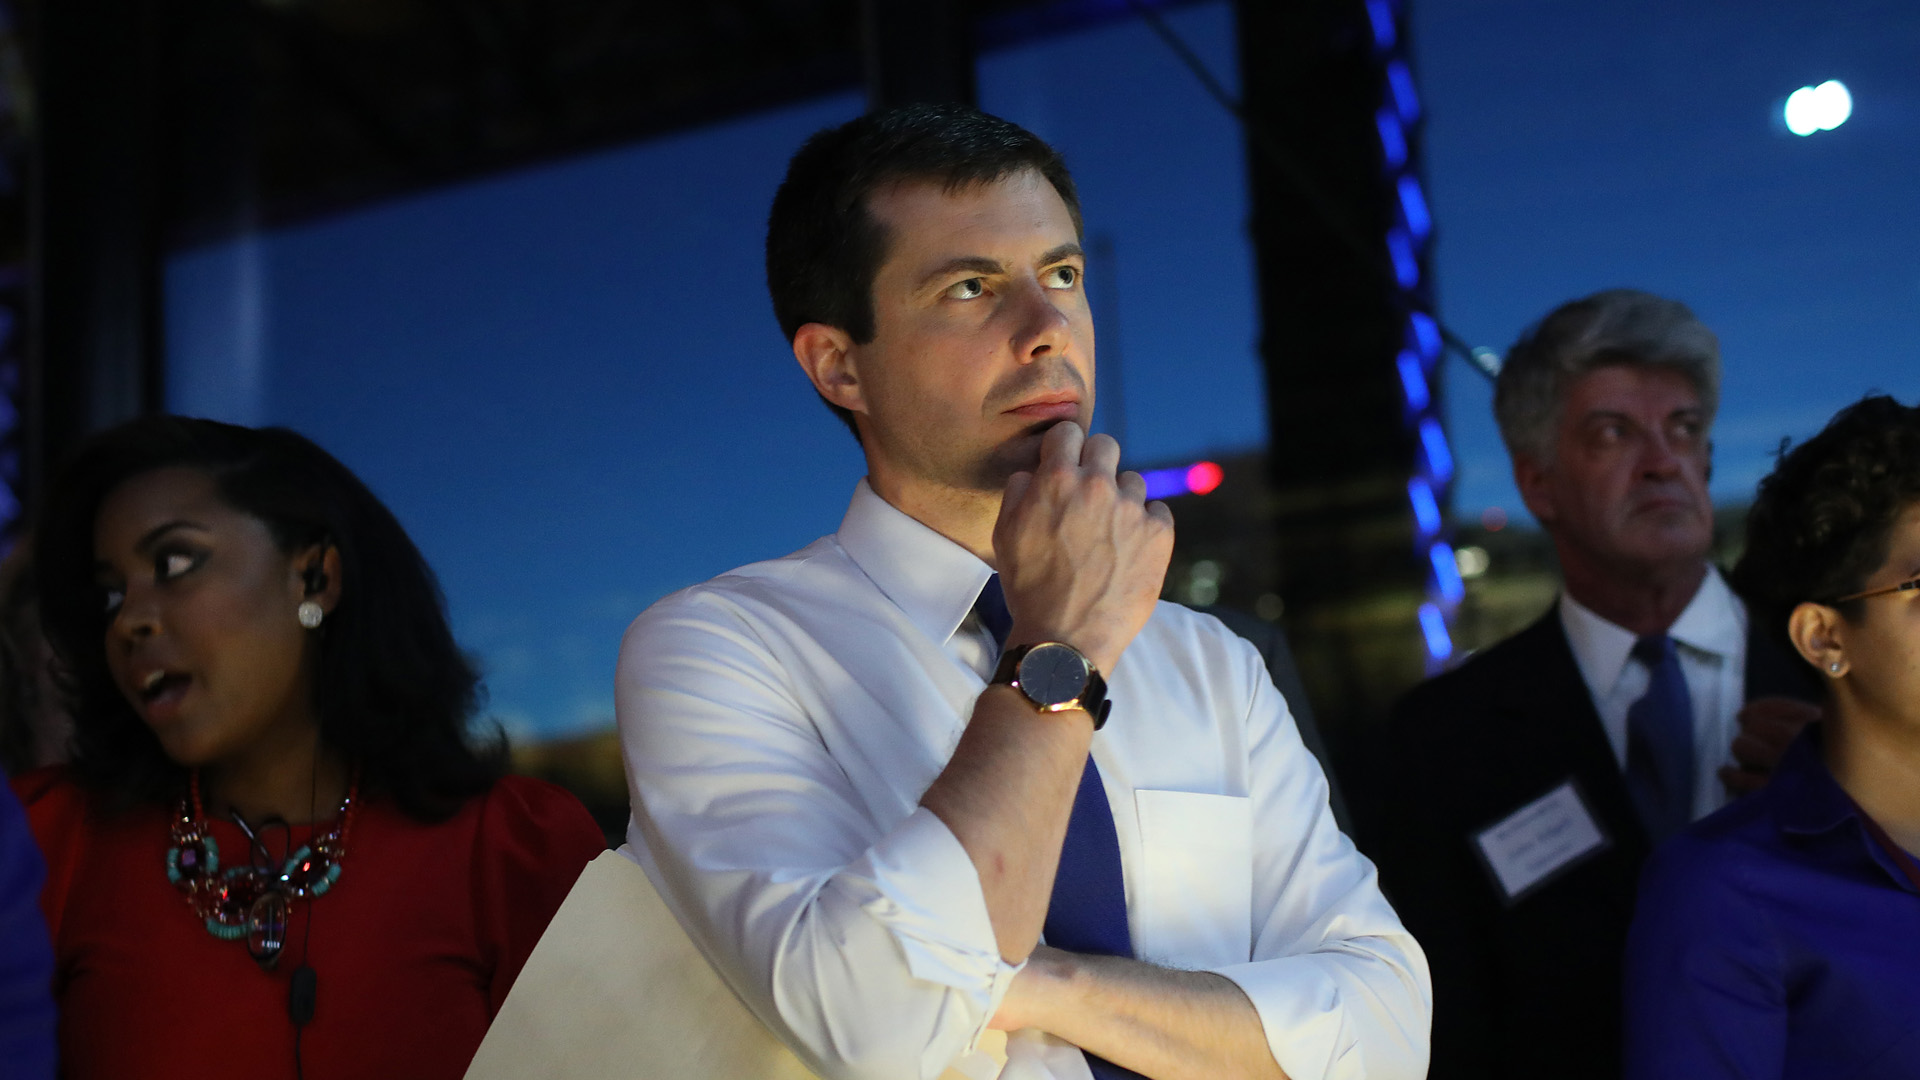 Democratic presidential candidate and Mayor of South Bend, Indiana, Pete Buttigieg attends the 2019 Blue Commonwealth Gala fundraiser June 15, 2019 in Richmond, Virginia.(Credit: Win McNamee/Getty Images)